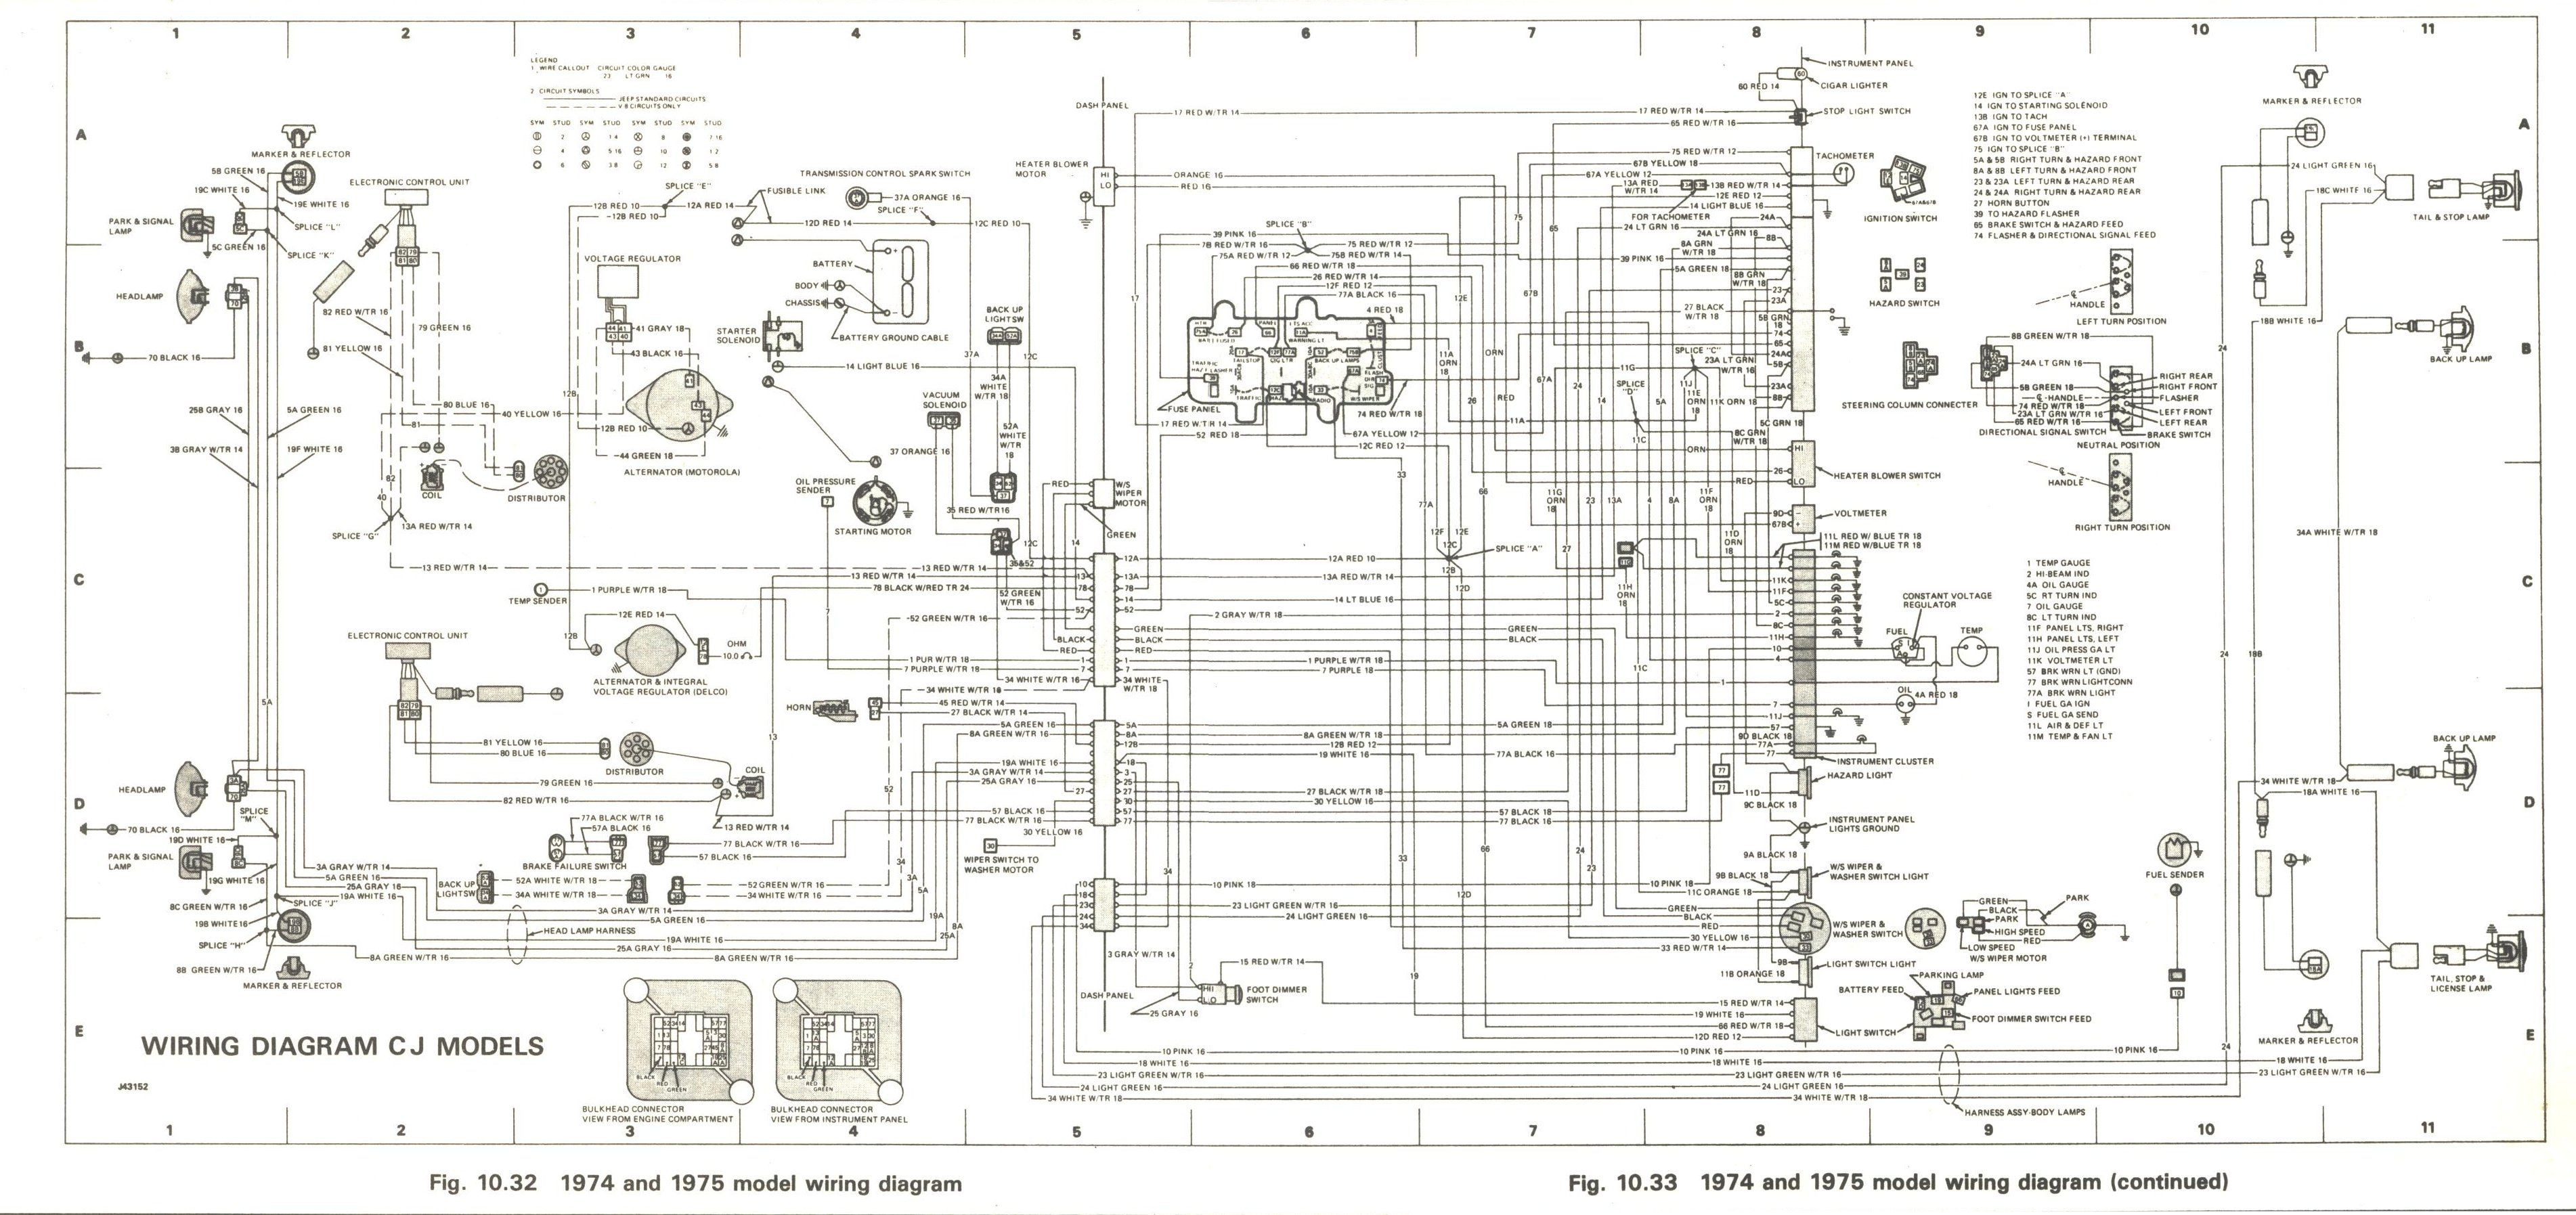 1980 cj5 wiring diagram furthermore jeep cj7 tachometer wiring rh pinterest ie jeep cj5 wiring diagram pdf 1975 jeep cj5 wiring diagram